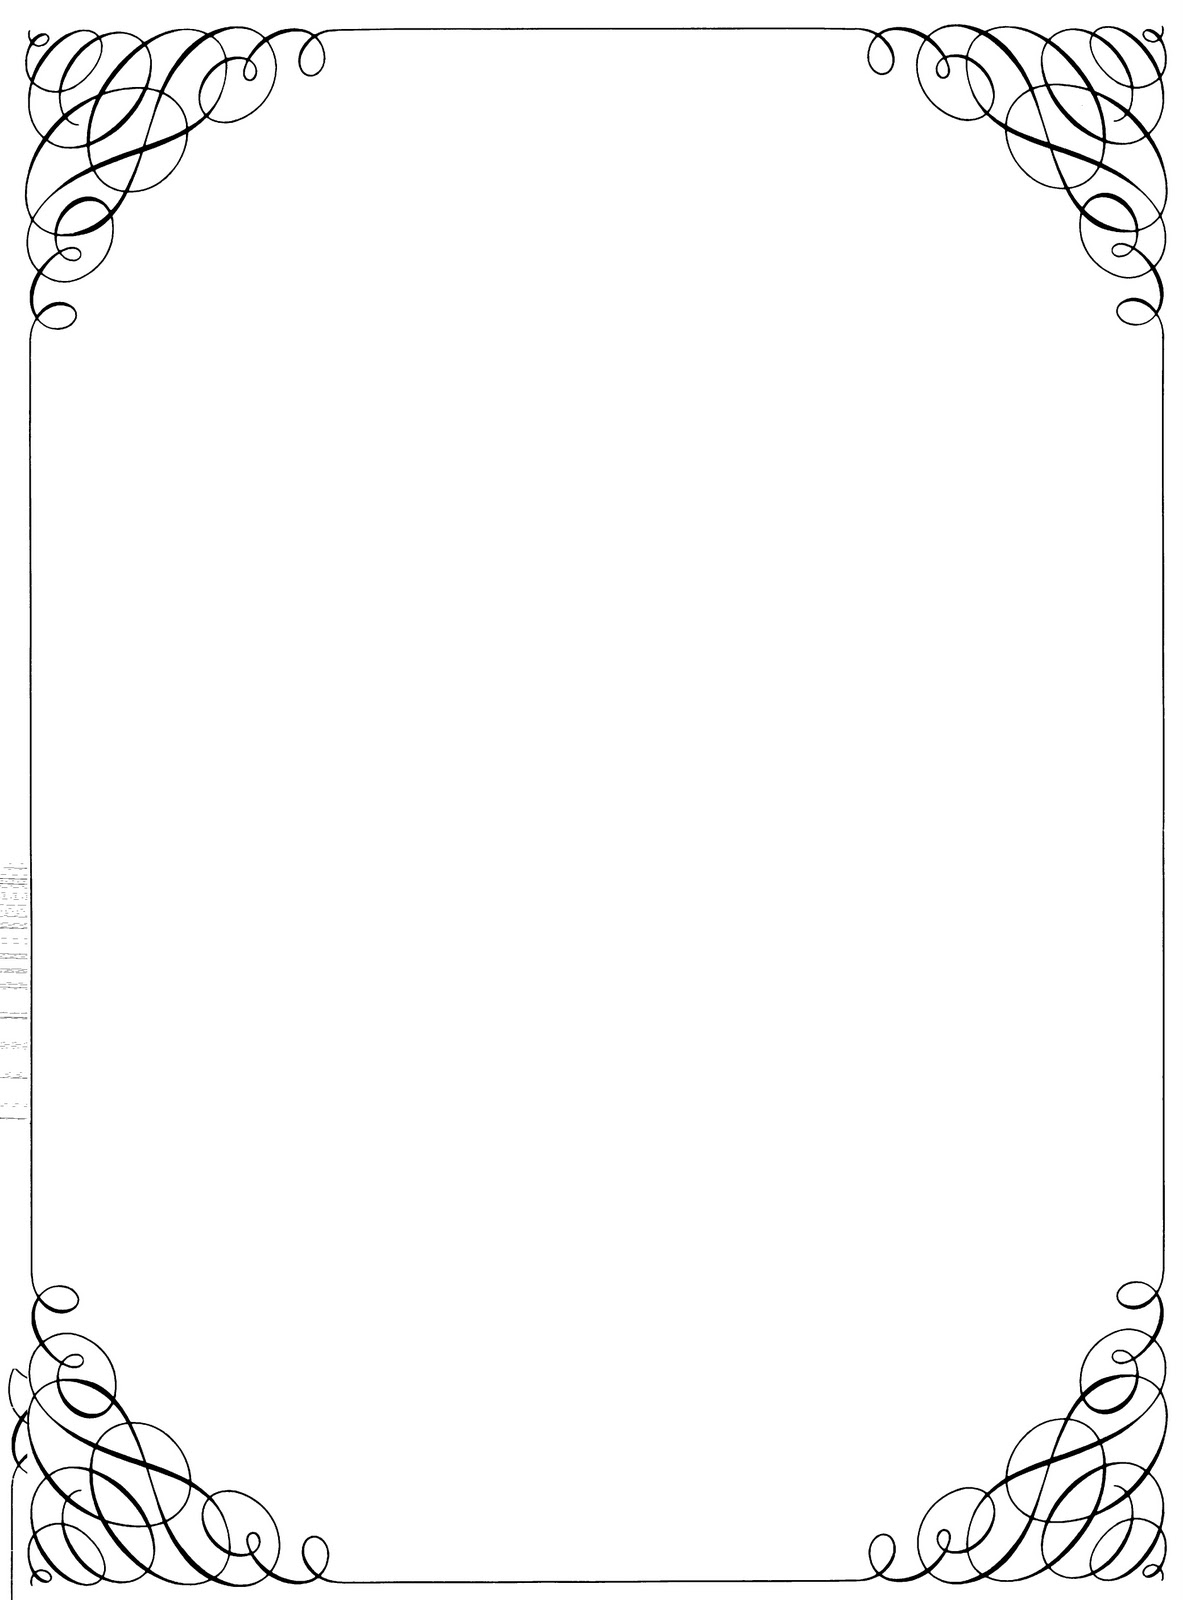 Free Downloadable Clip Art Borders 1 New Hd Template